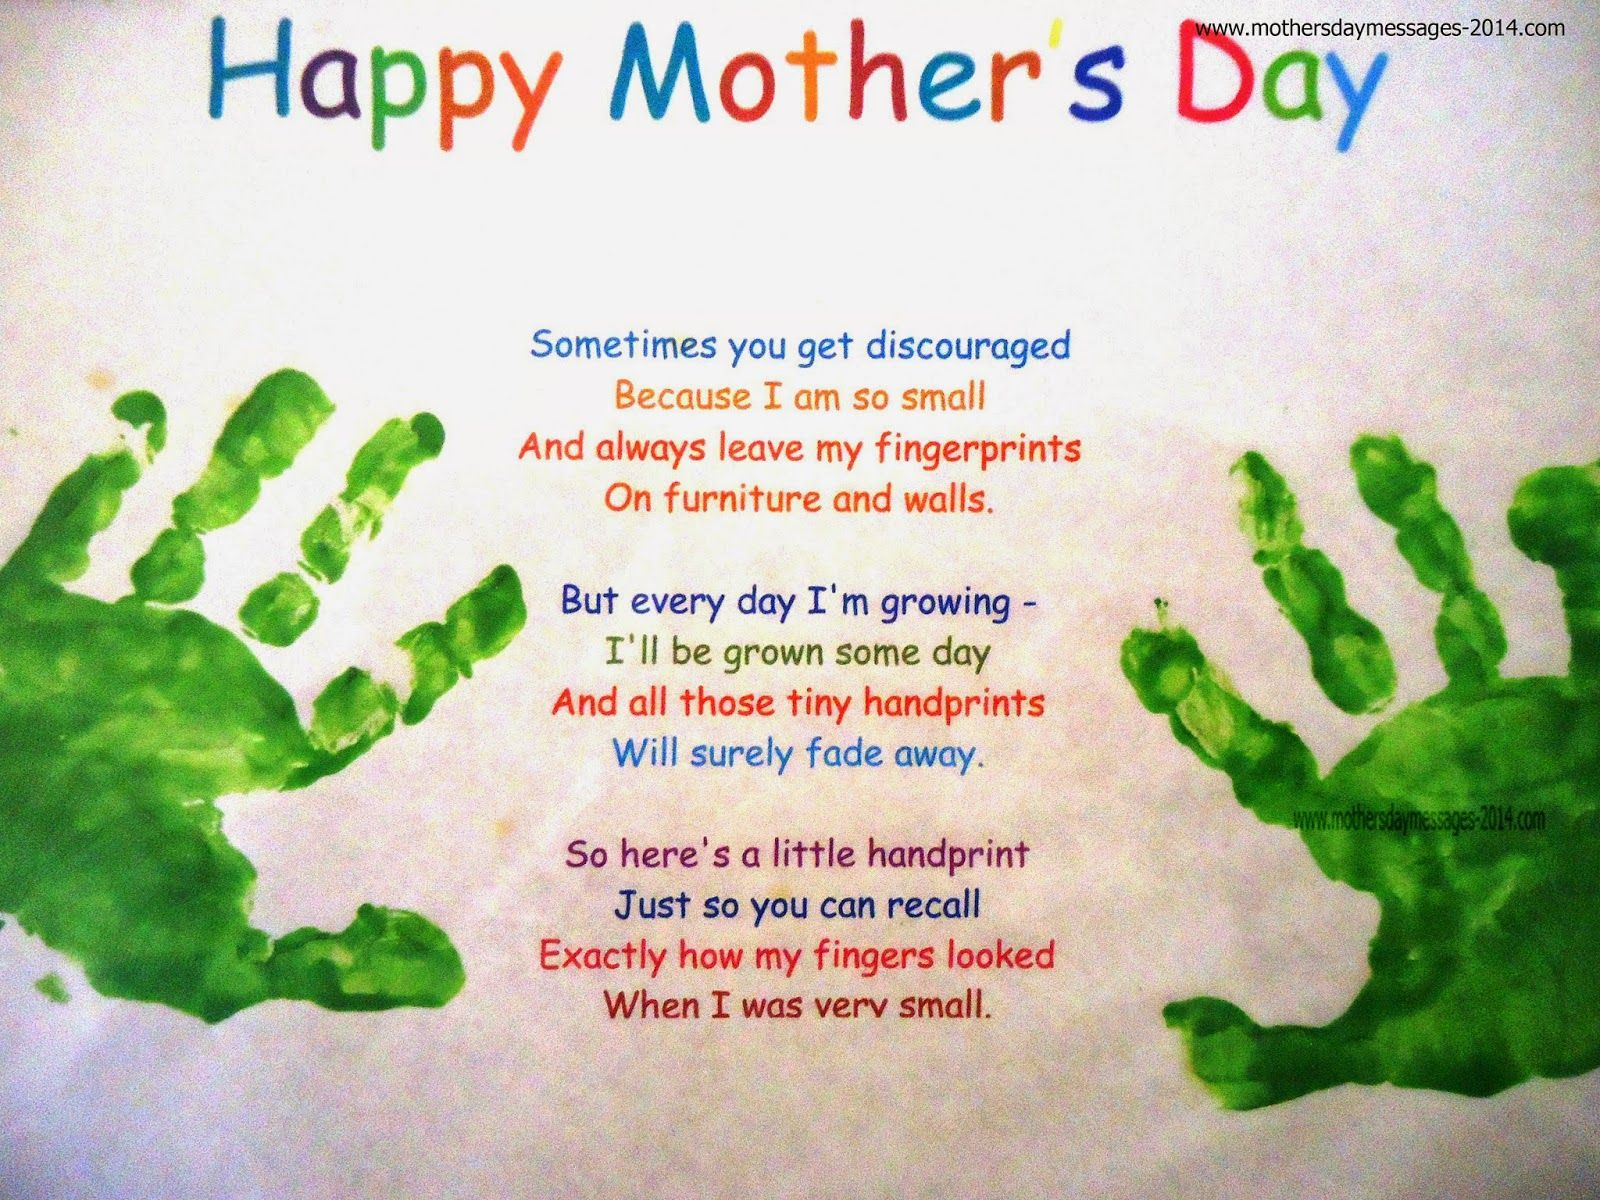 Happy Mothers Day Photos For Facebook Status Pinterest Twitter Mothers Day Poems Mother Day Message Happy Mother S Day Greetings